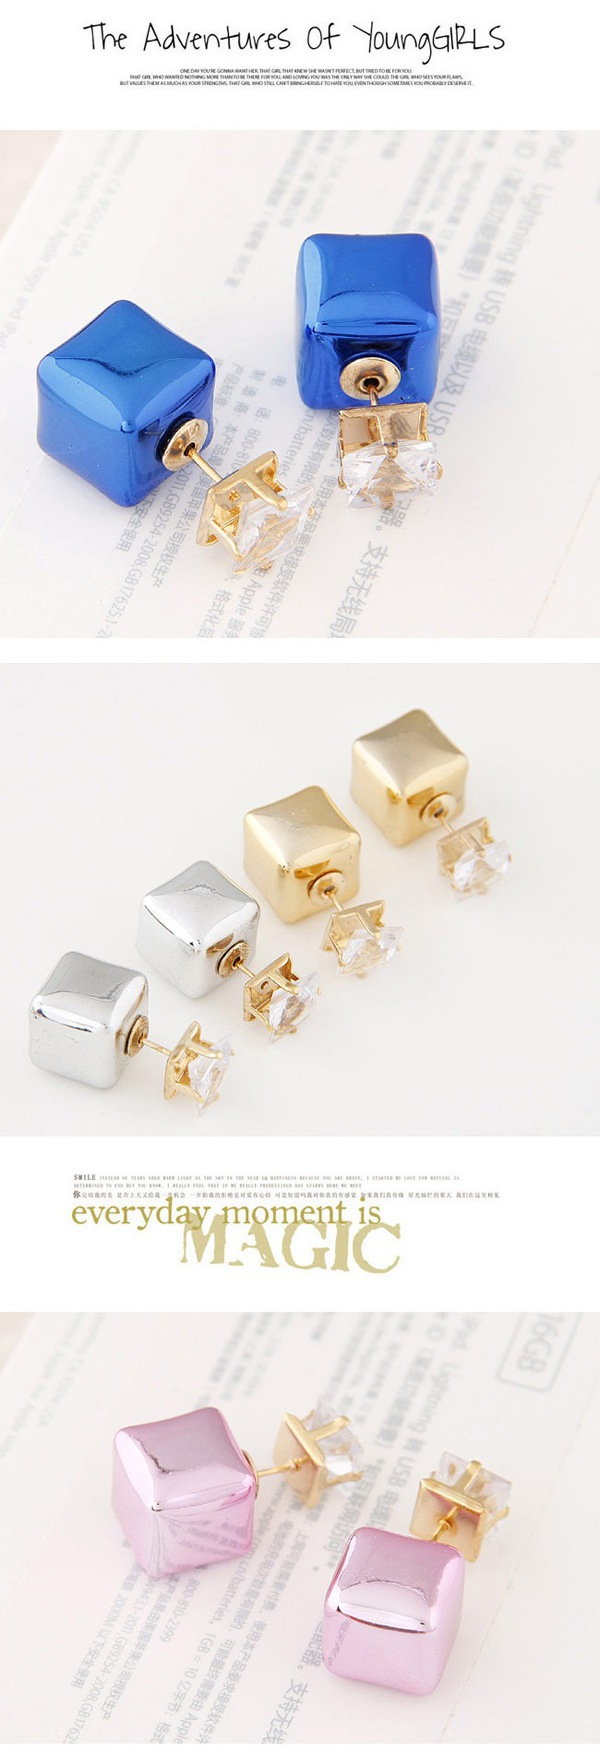 Anting Tusuk T6D7EC